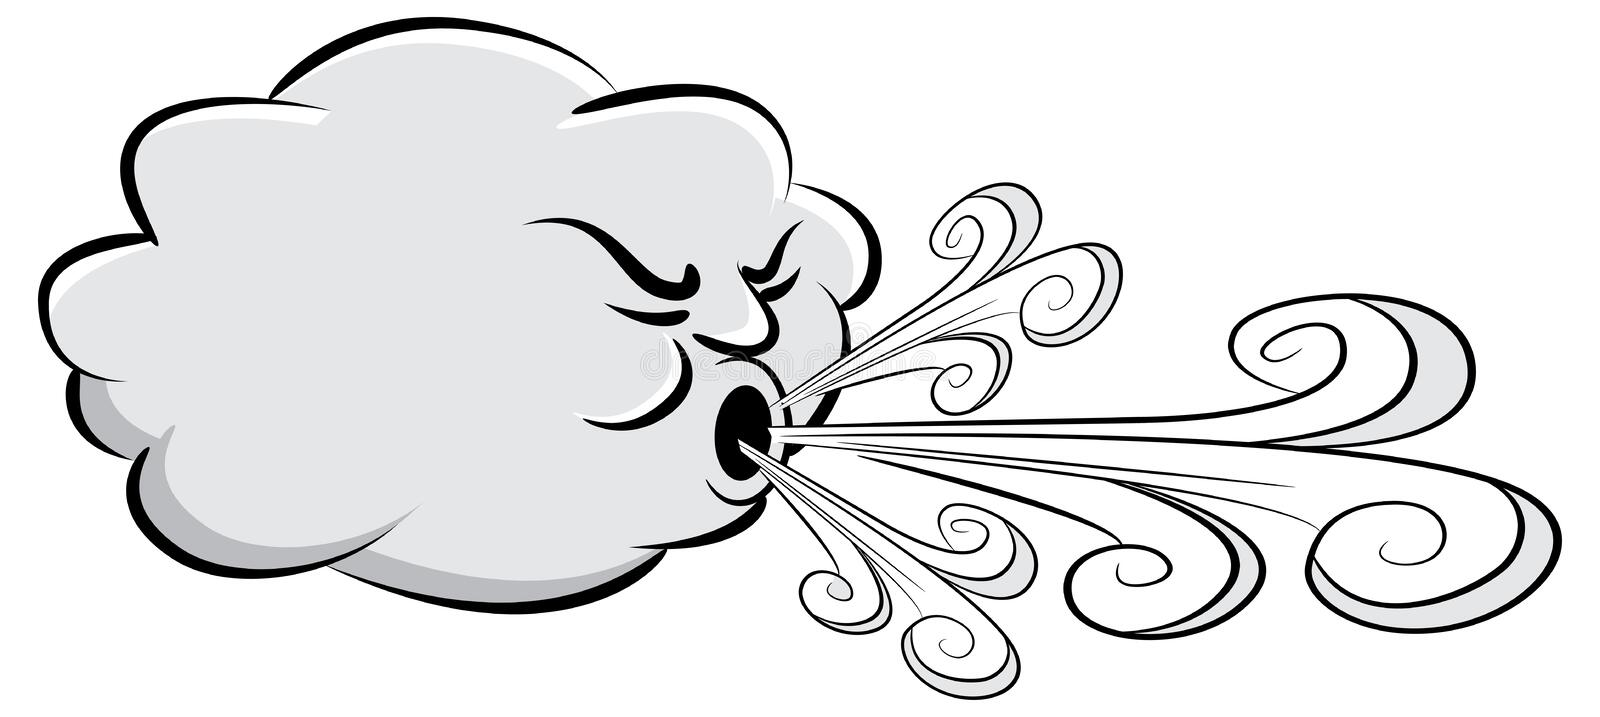 windy day cloud blowing wind stock vector illustration of wind rh dreamstime com clipart of windy cloud windy clip art free